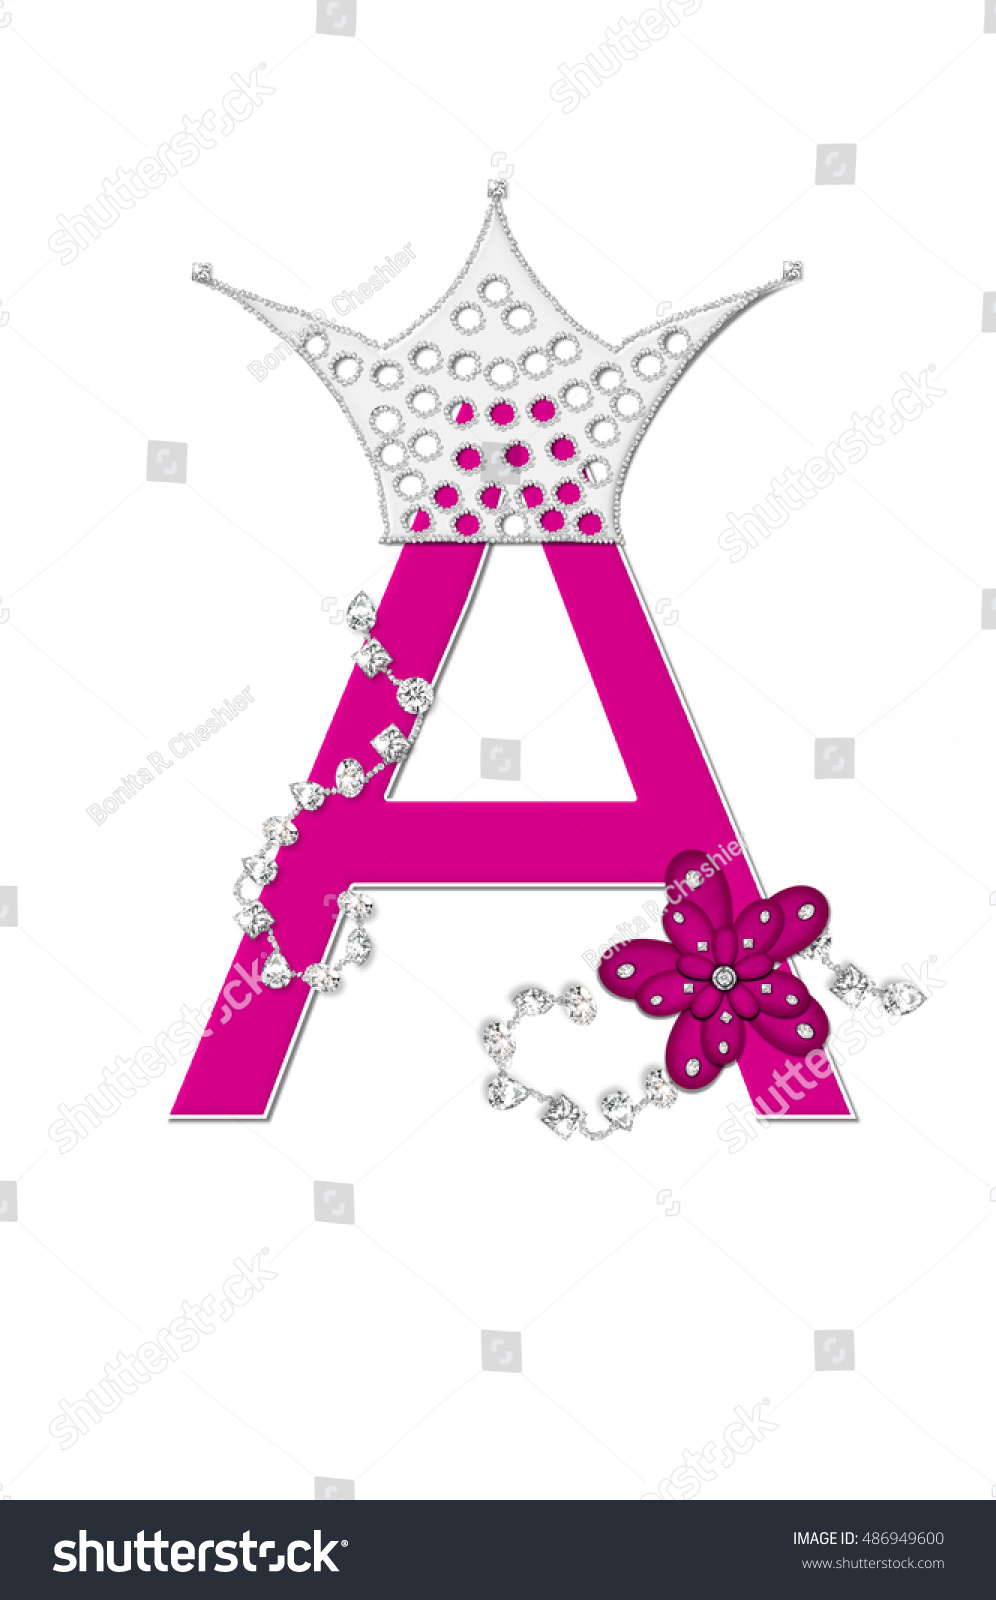 Royalty Free Stock Illustration of Letter A Alphabet Set Pageant